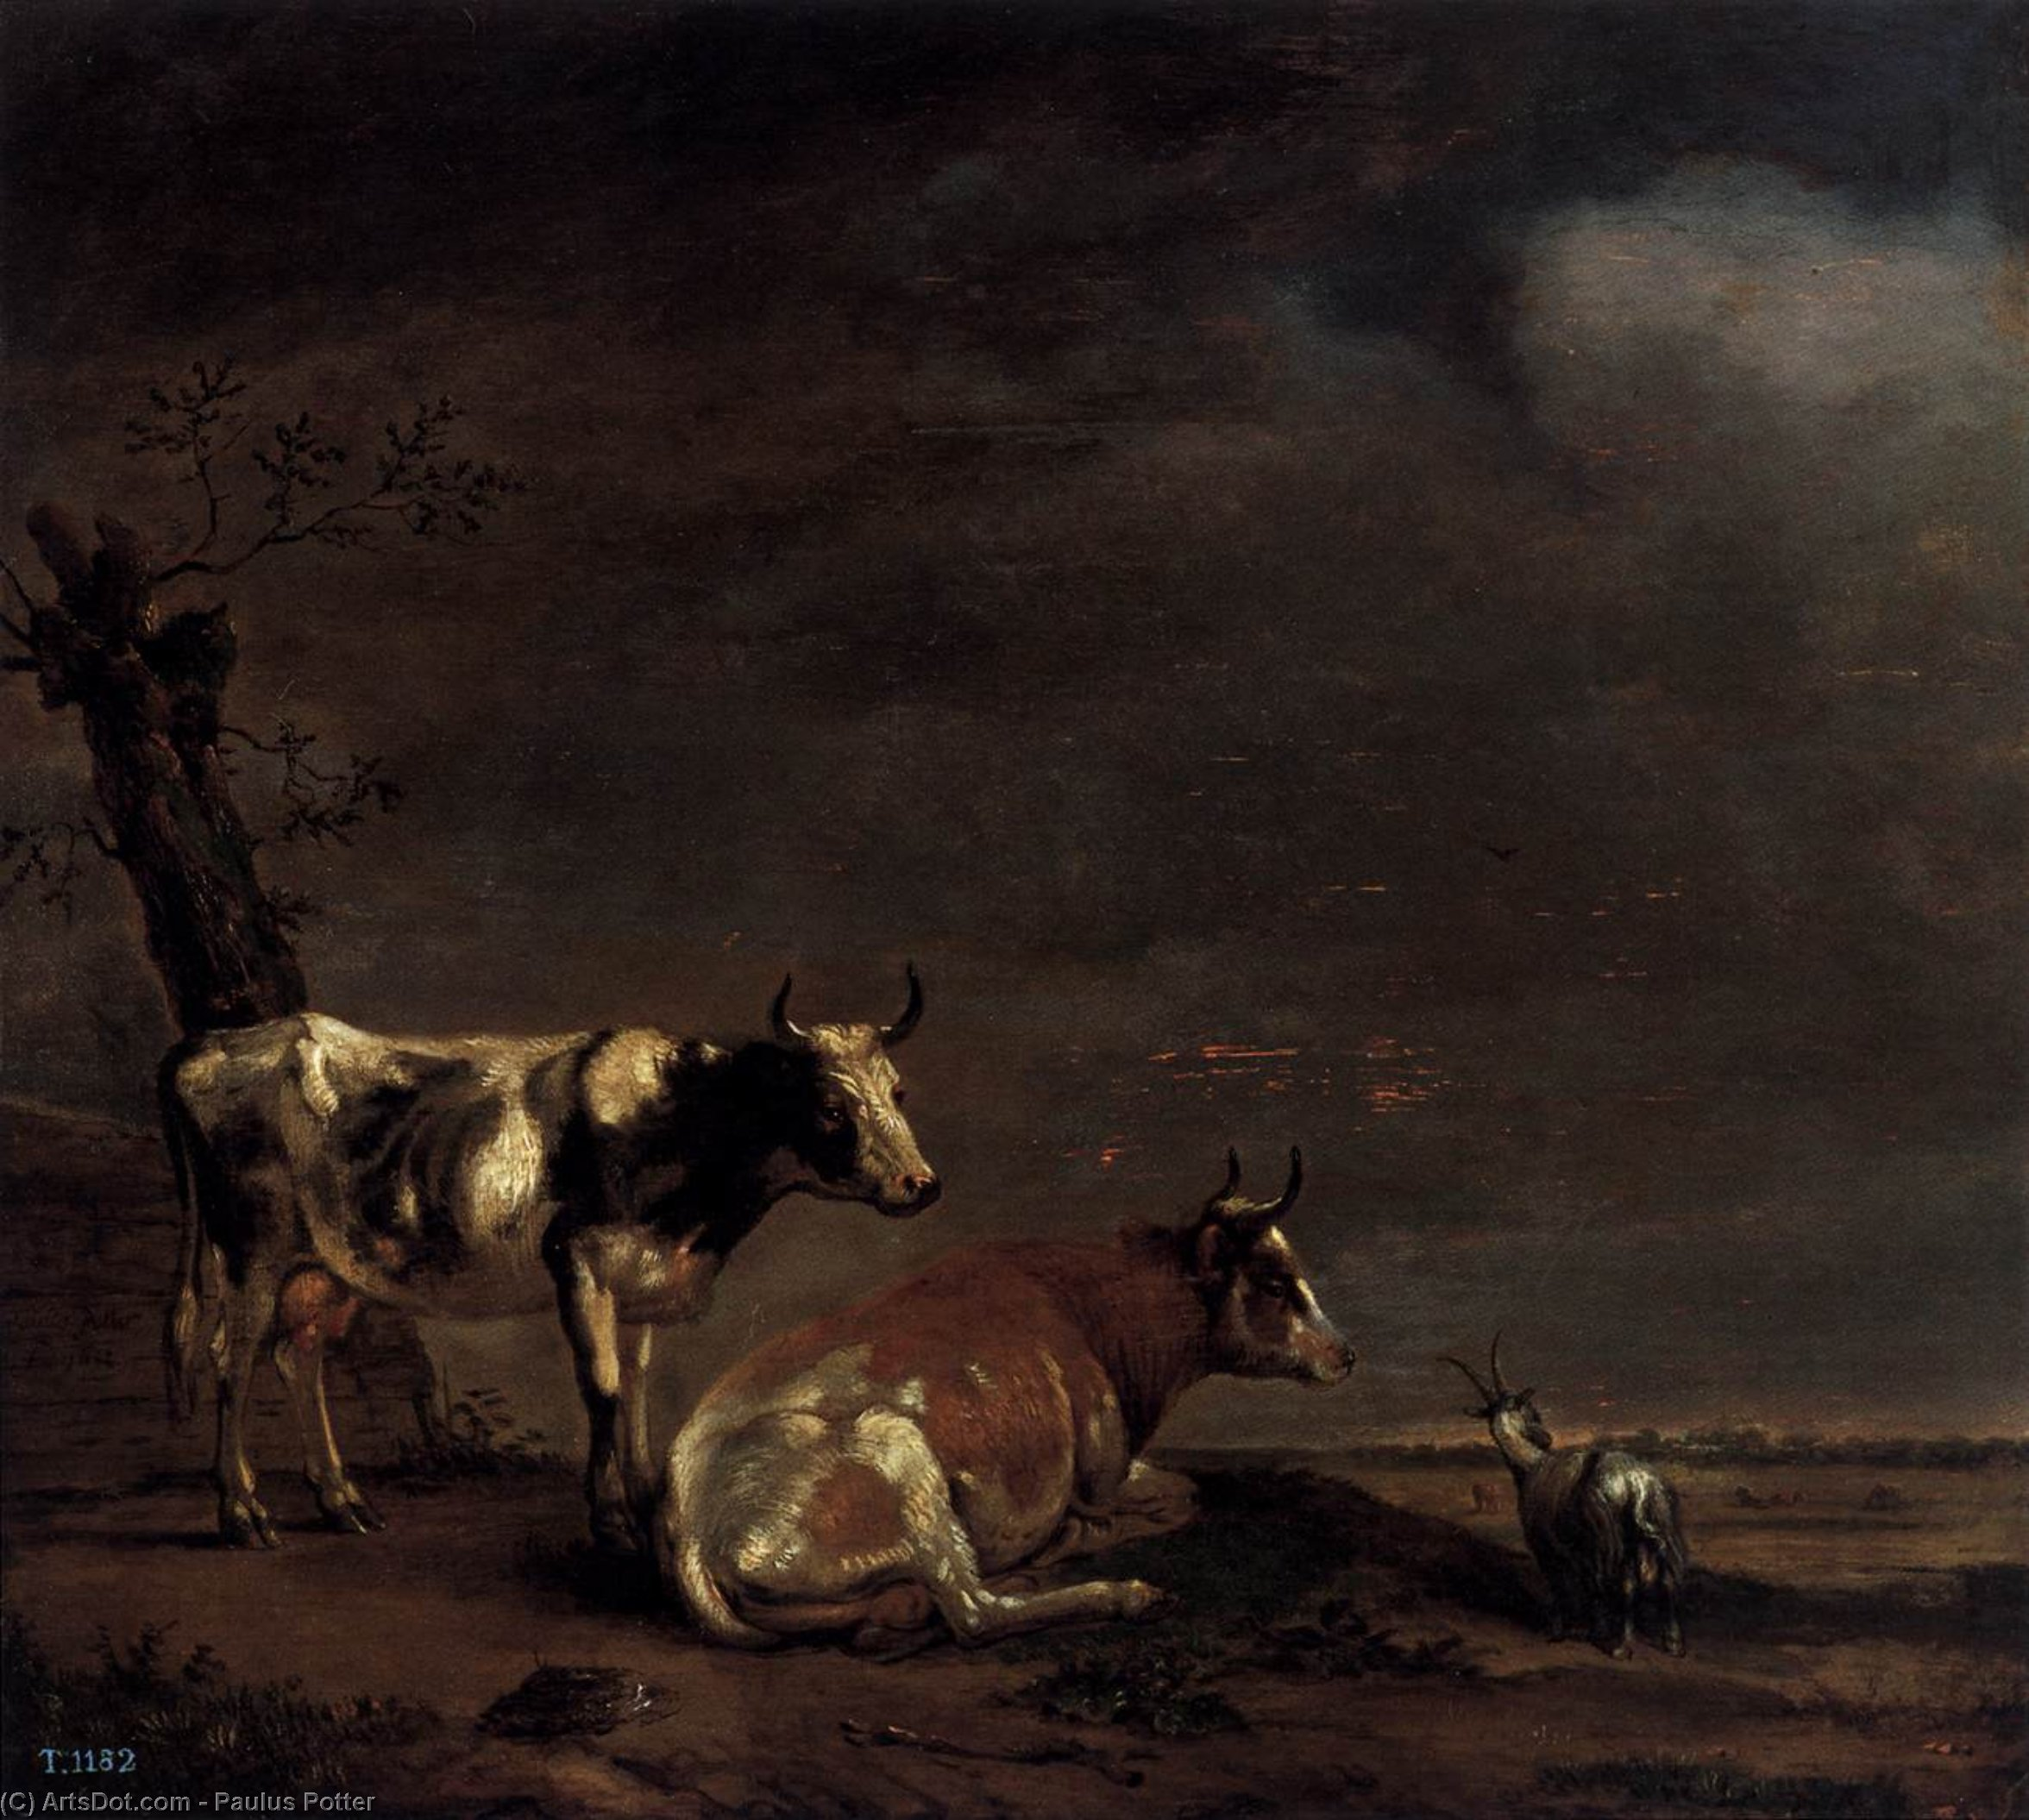 Landscape with Two Cows and a Goat, 1652 by Paulus Potter (1625-1654, Netherlands) | ArtsDot.com